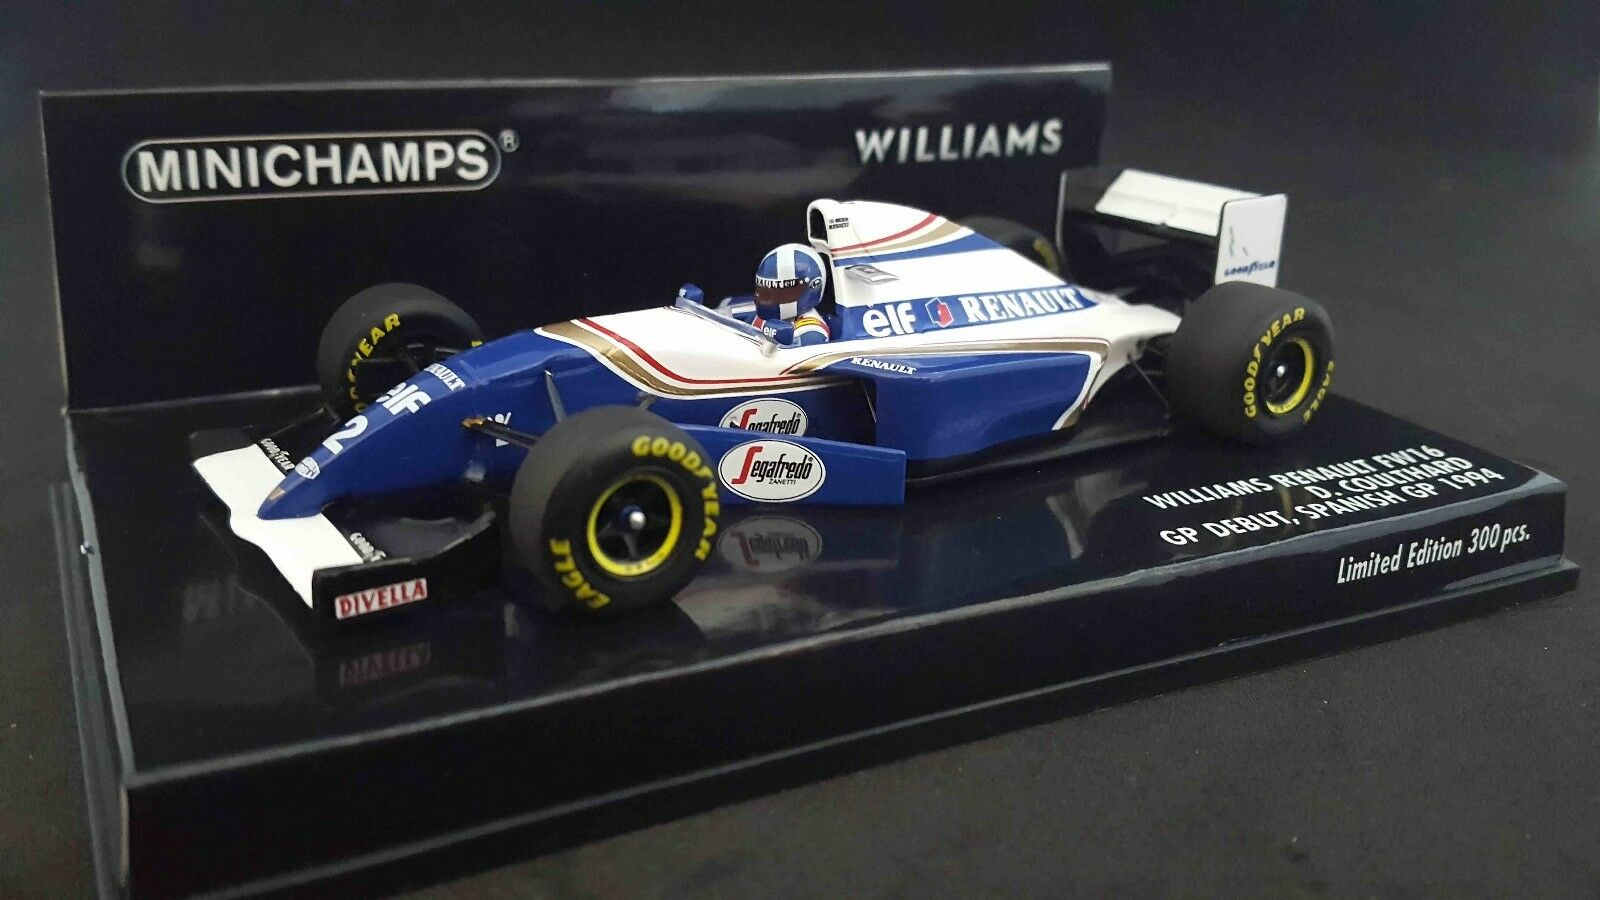 MINICHAMPS 417940802 143 94 Williams FW16 David Coulthard Debut Spain F1 Model